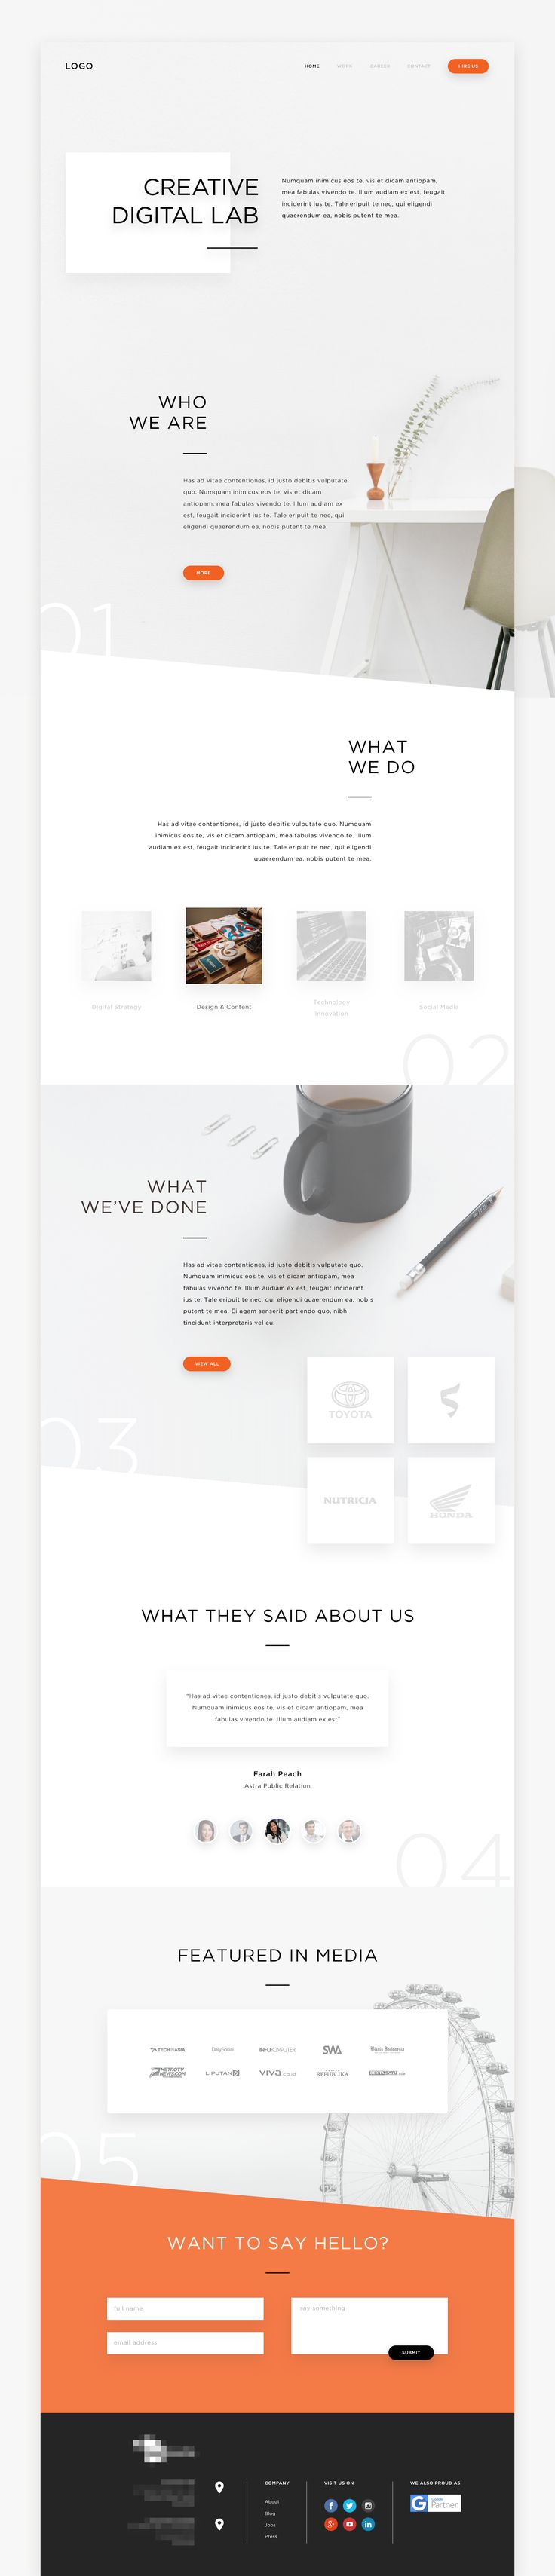 Creative Digital Lab - #webdesign #inspiration